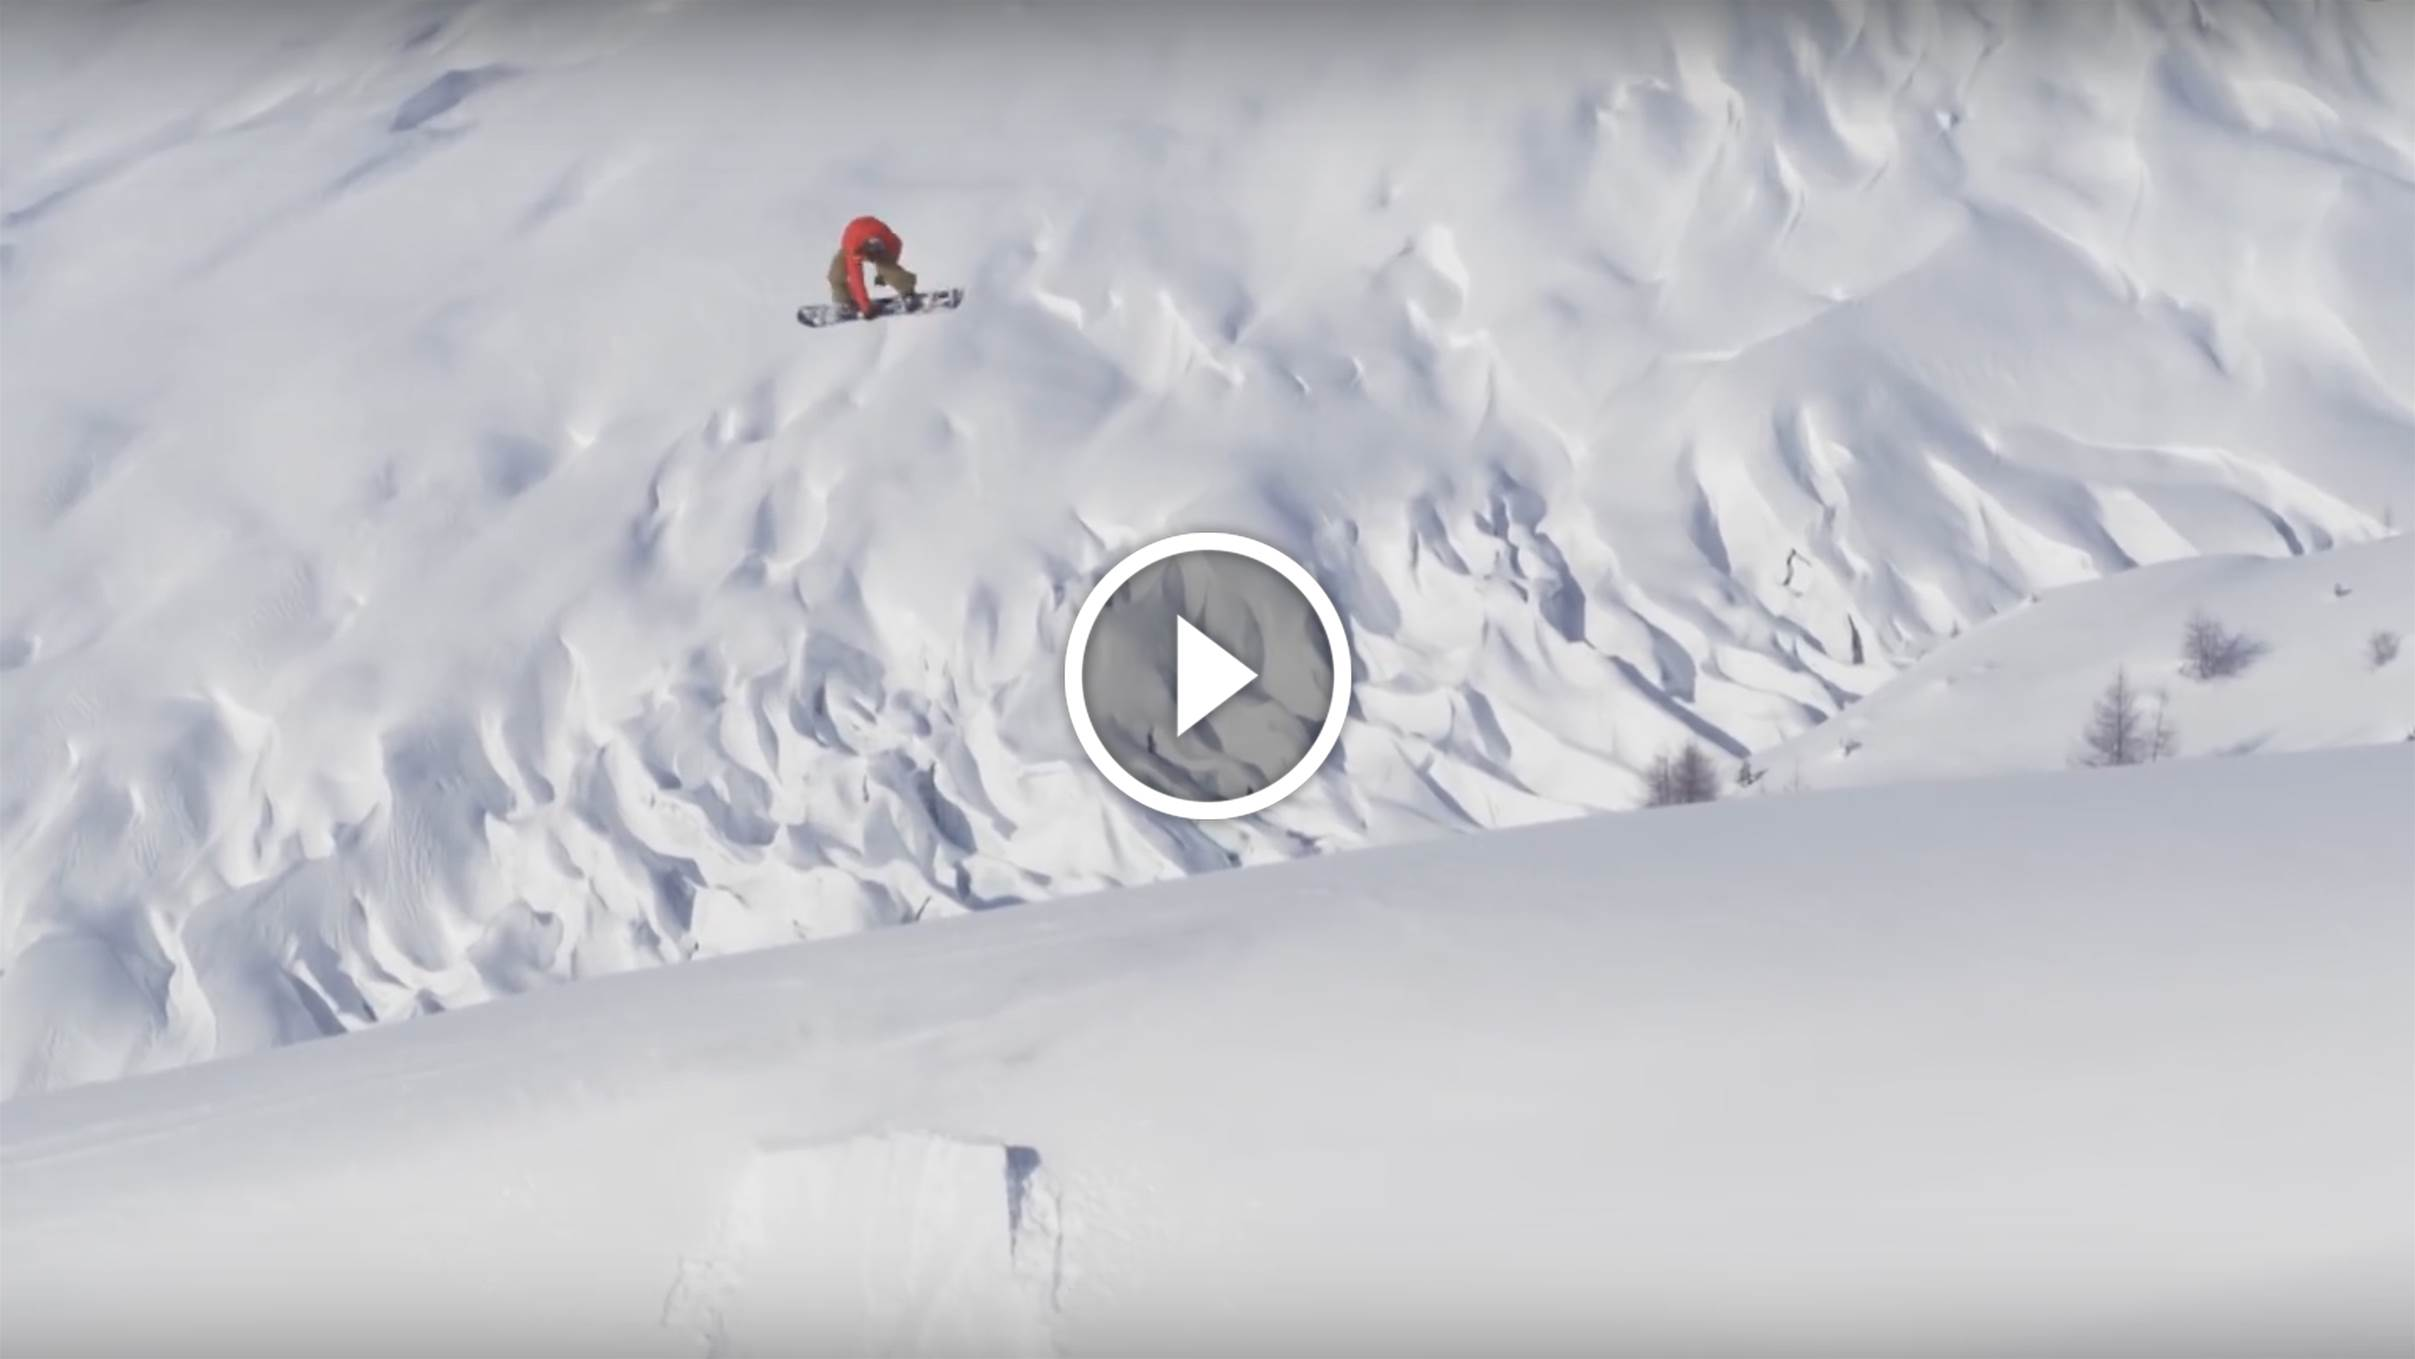 Charging Backcountry Powder with John Jackson